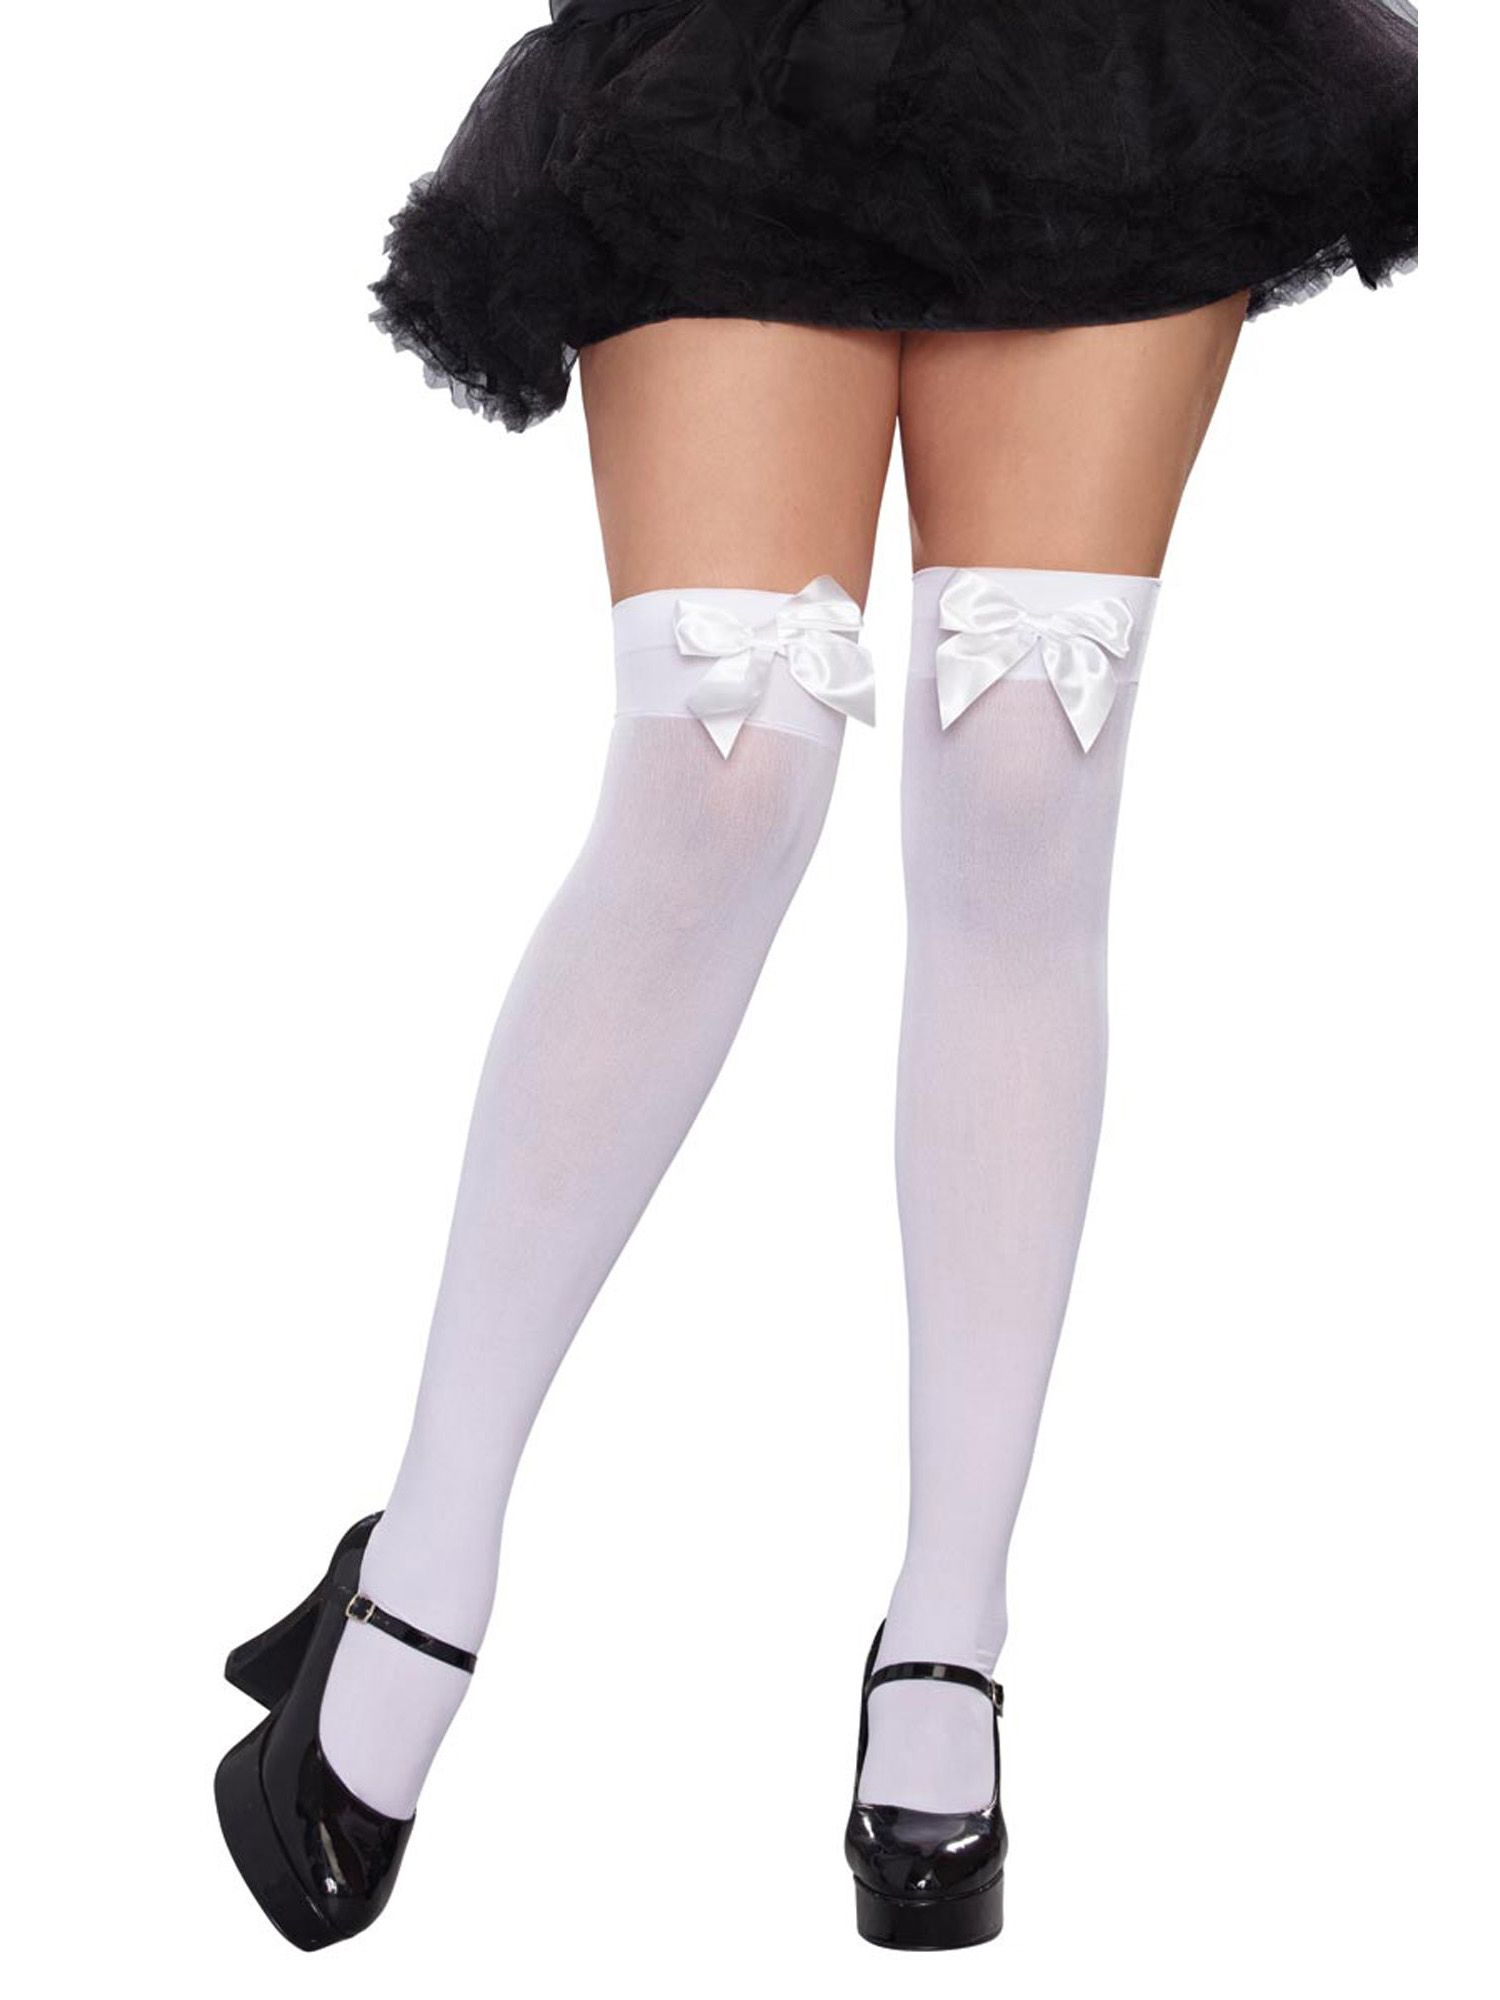 299852949ca221 Plus Size Full Figure Satin Bow Opaque Thigh High Stockings Hosiery#Satin, # Bow, #Figure